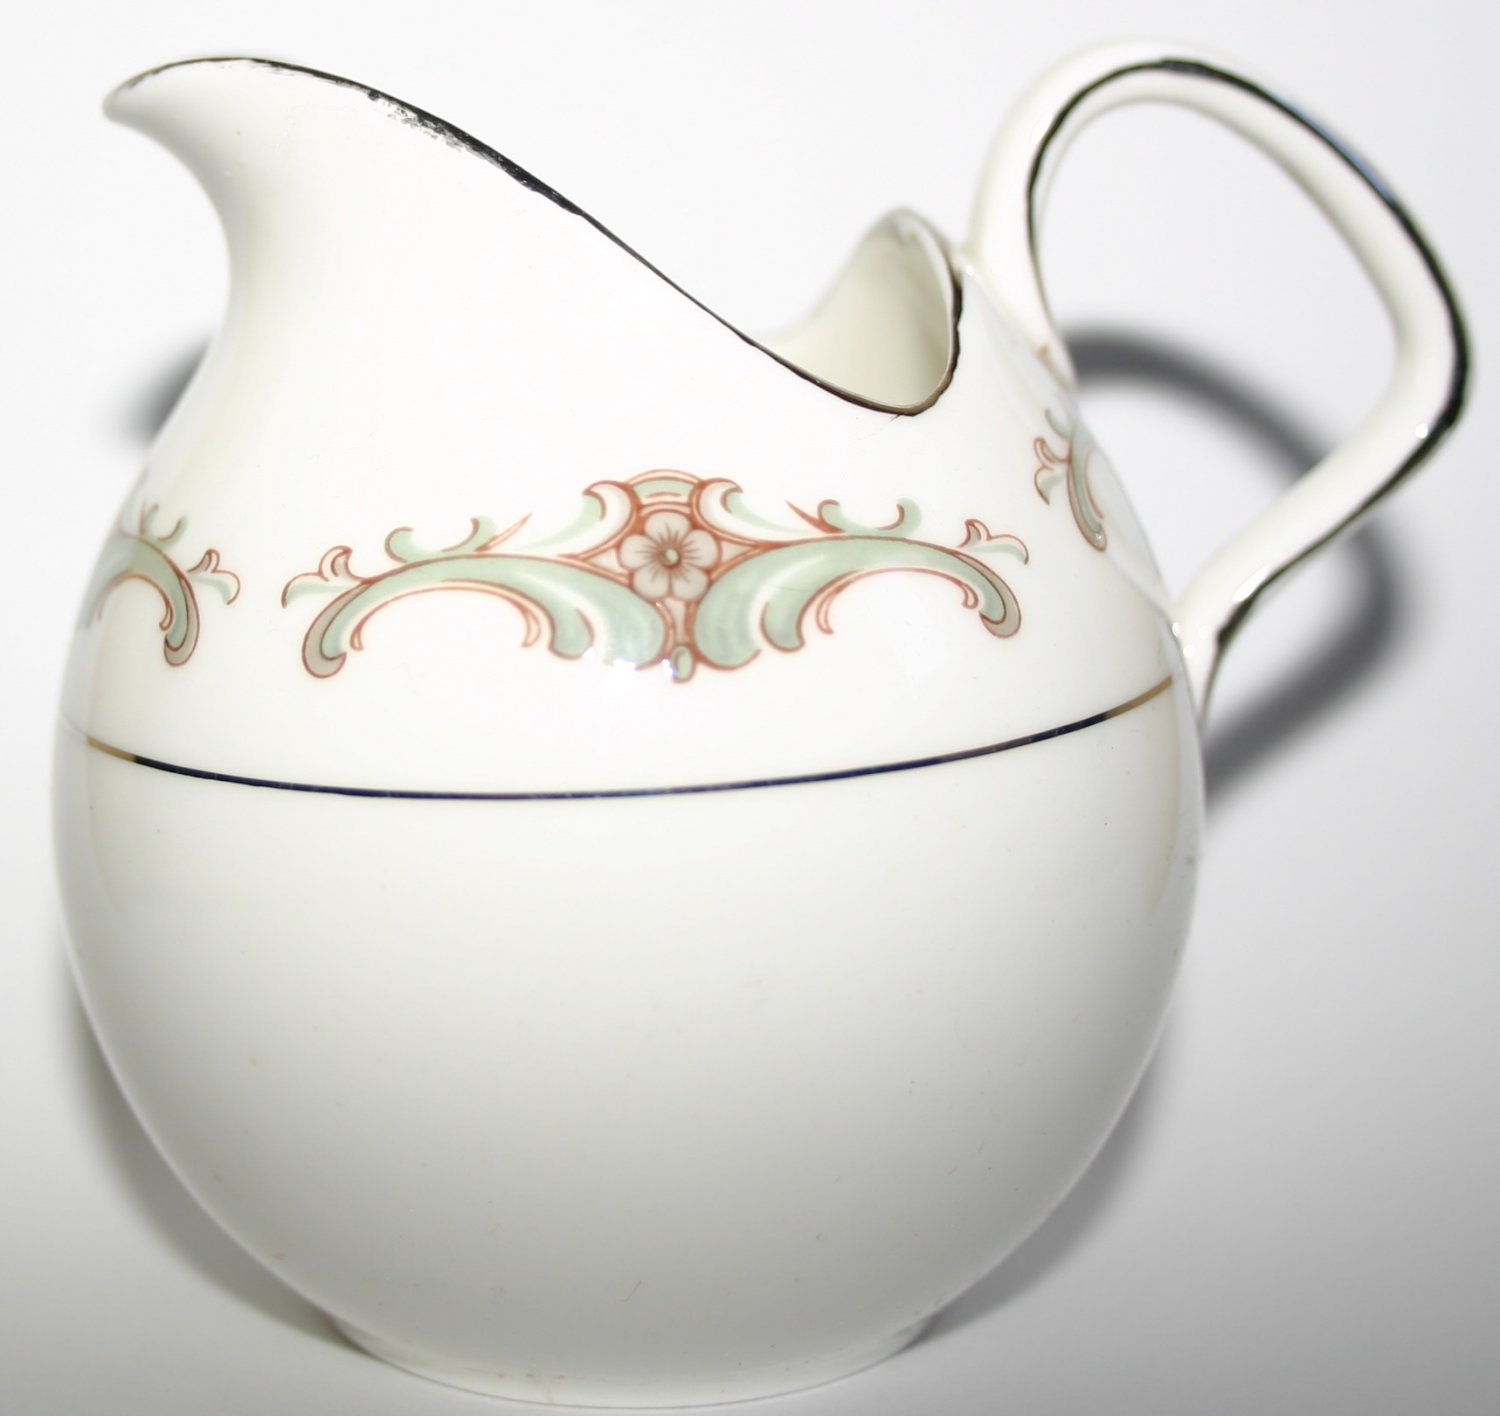 Foley Bone China Porcelain Angelique Design Vintage Collectors Milk Jug Creamer